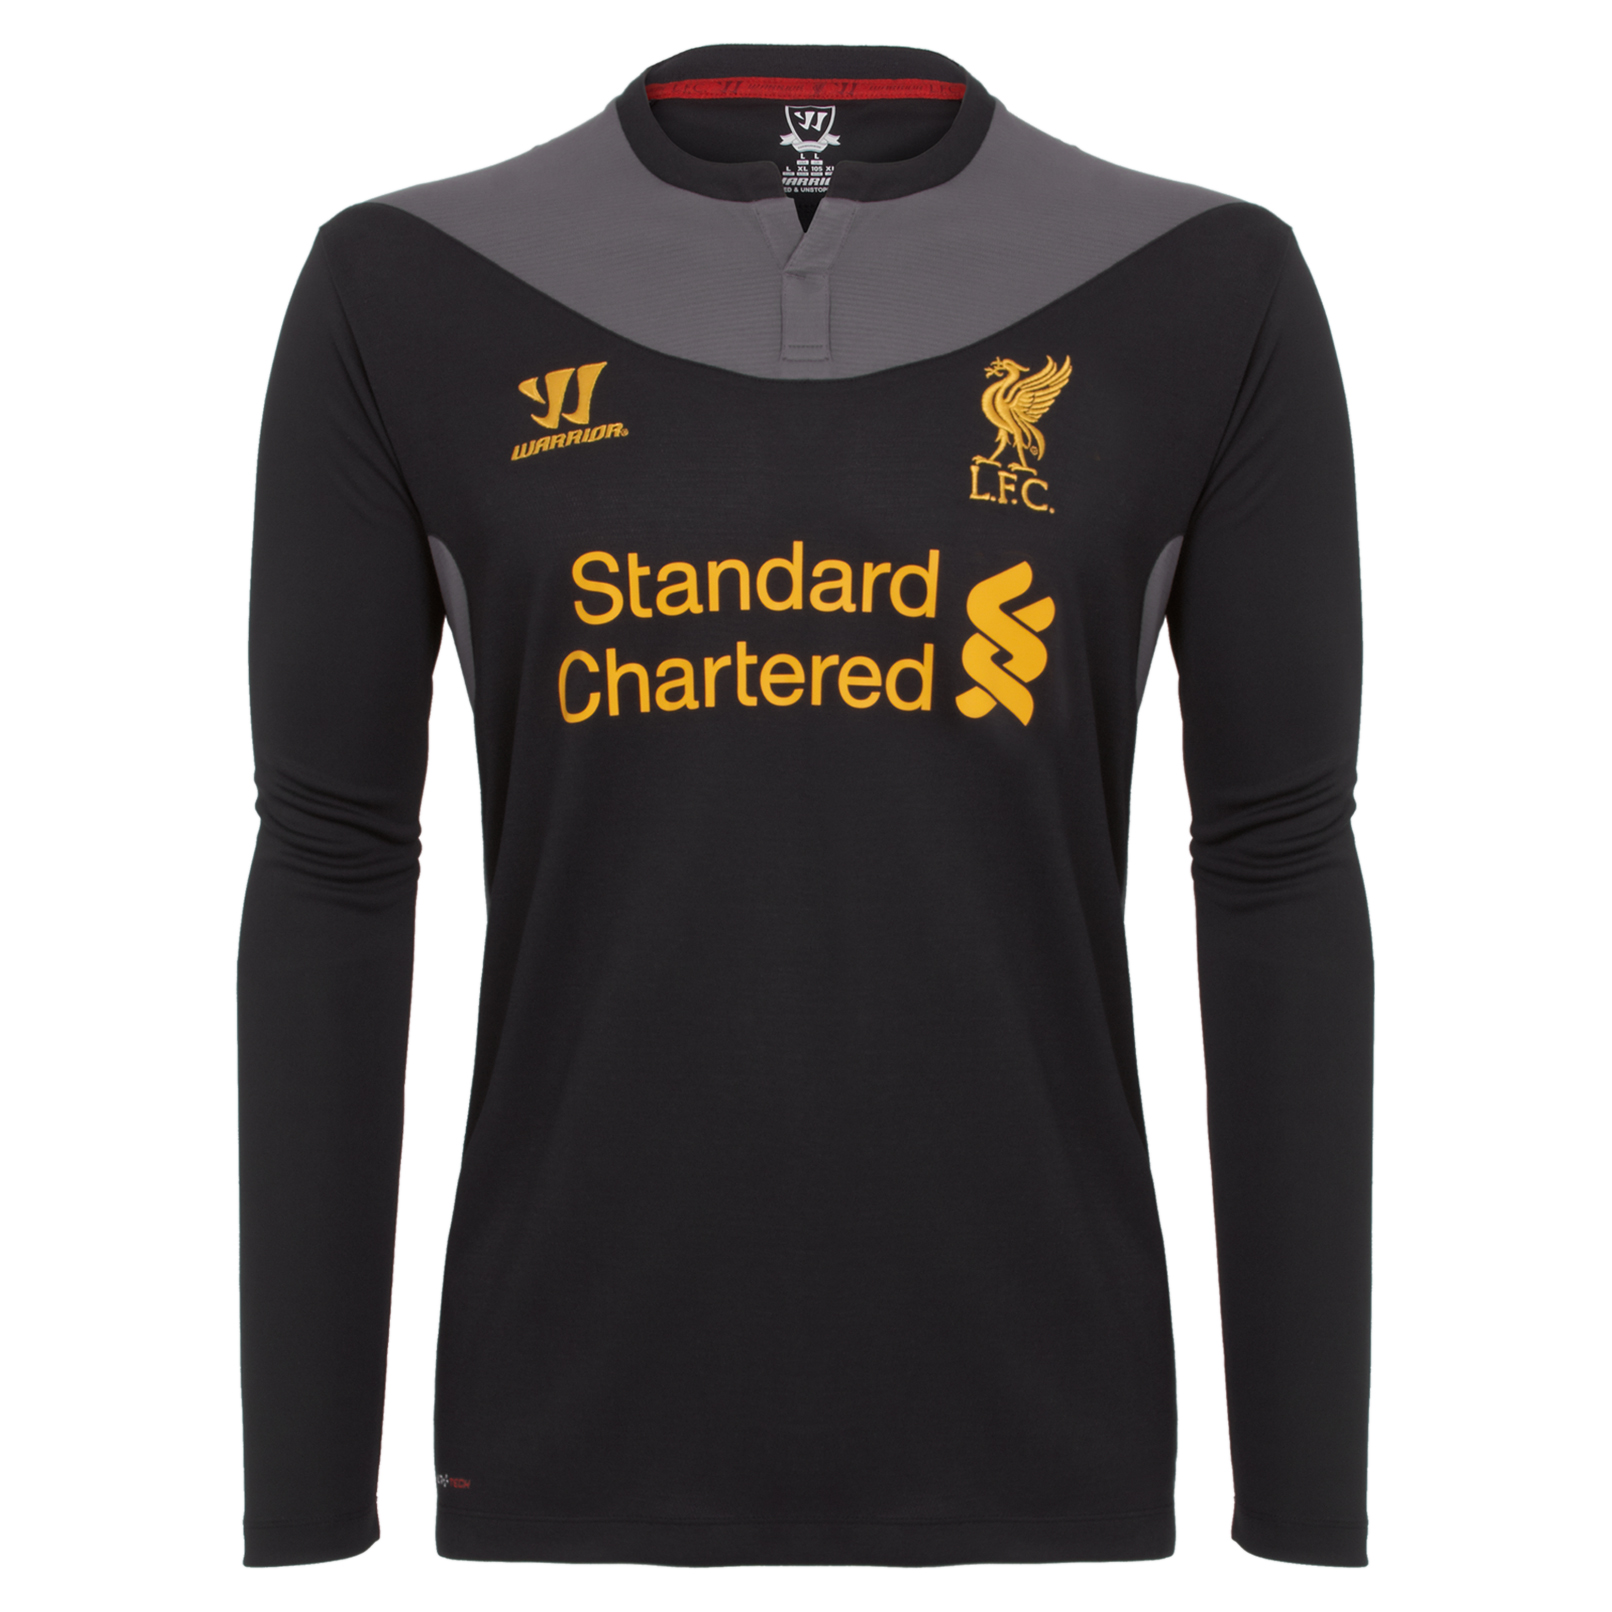 Liverpool Away Shirt 2012/13 - Long Sleeve - Youths